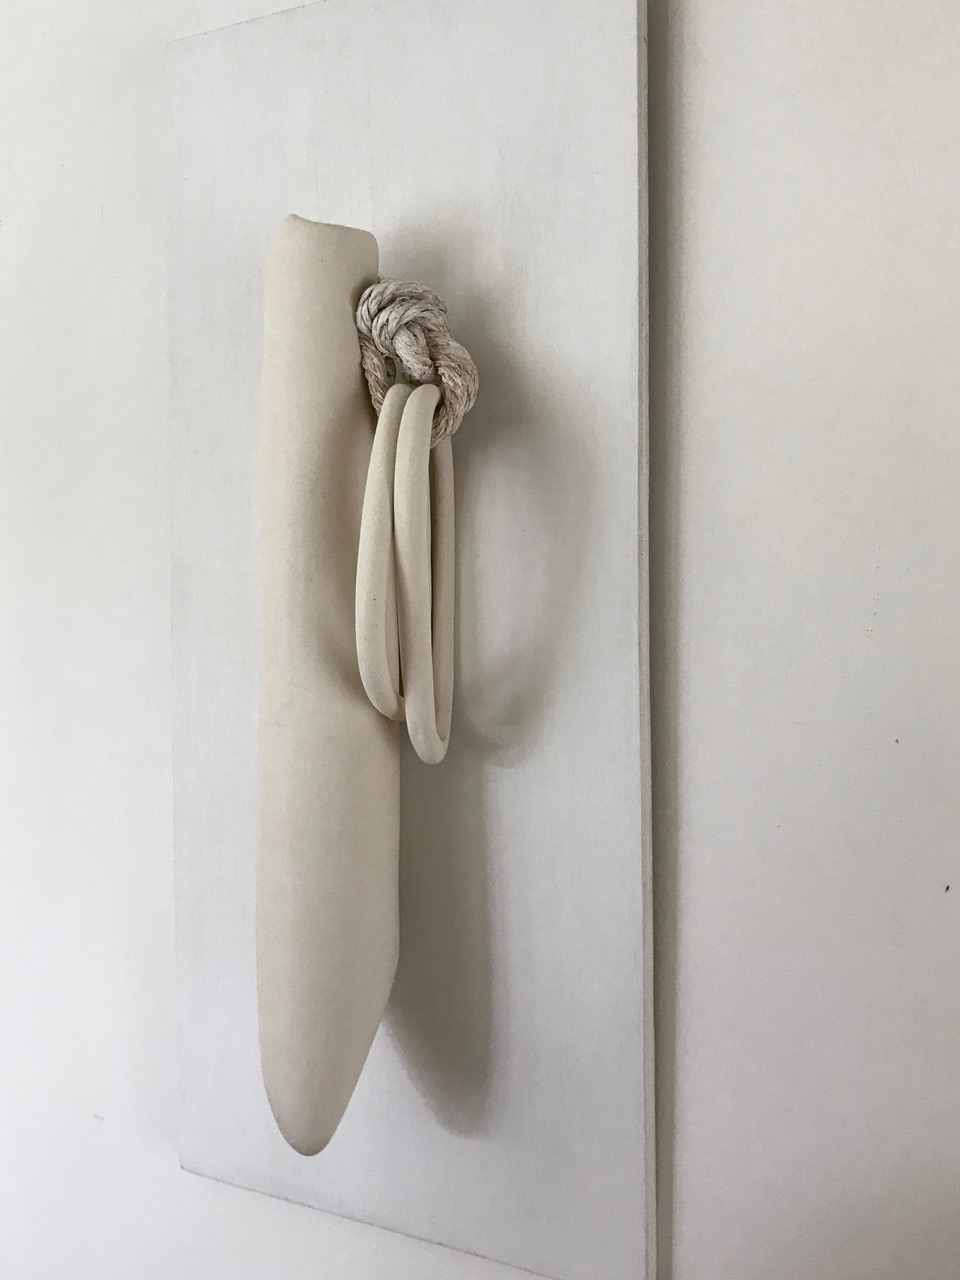 What We Carry, 2018, porcelain and rope, 23 x 10 x 4 in, $1,100